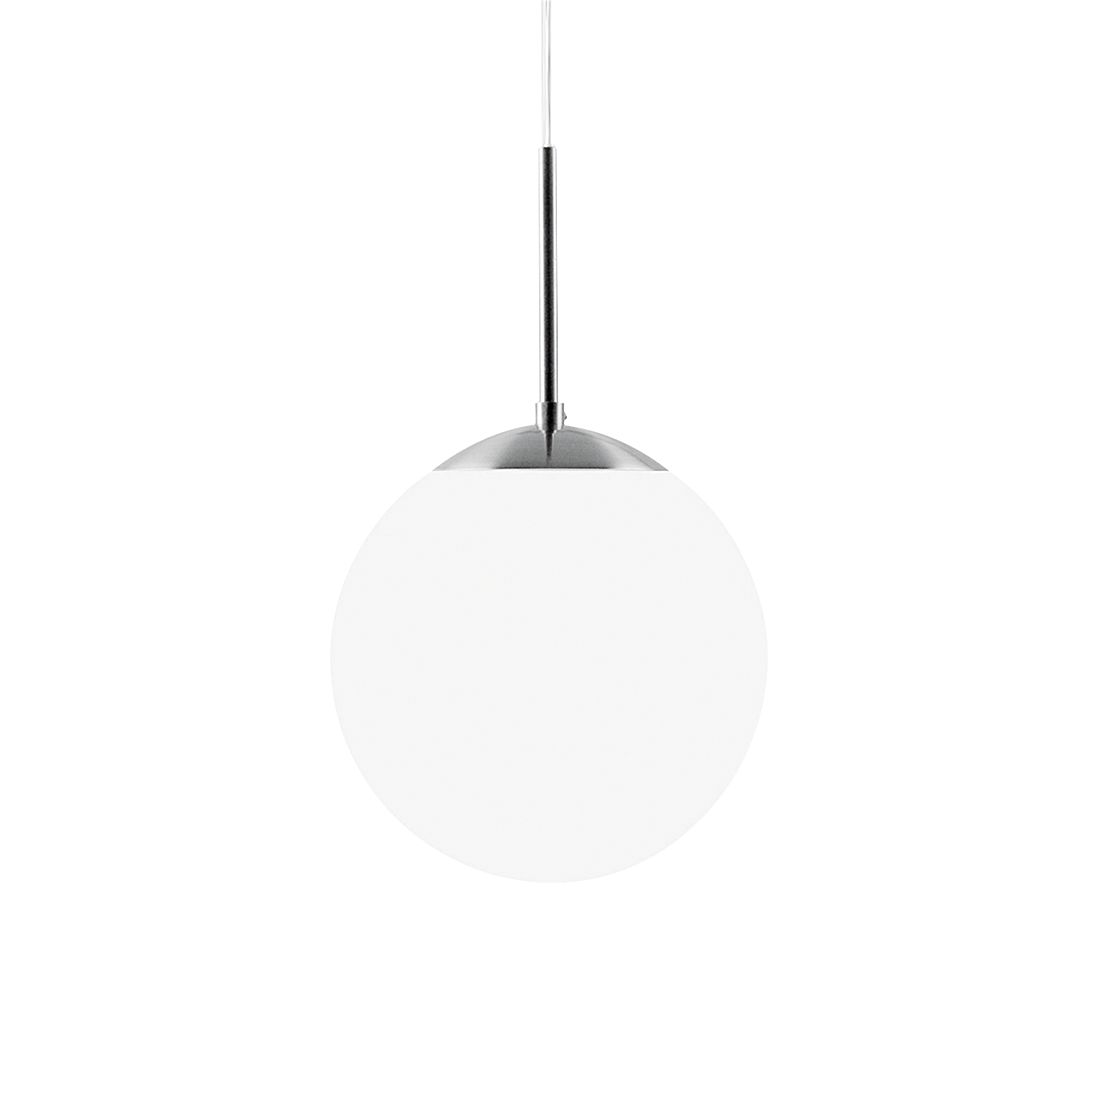 Pendelleuchte Cafe ● Metall/Glas ● Silber/OpalWeiß ● 15- Nordlux A++